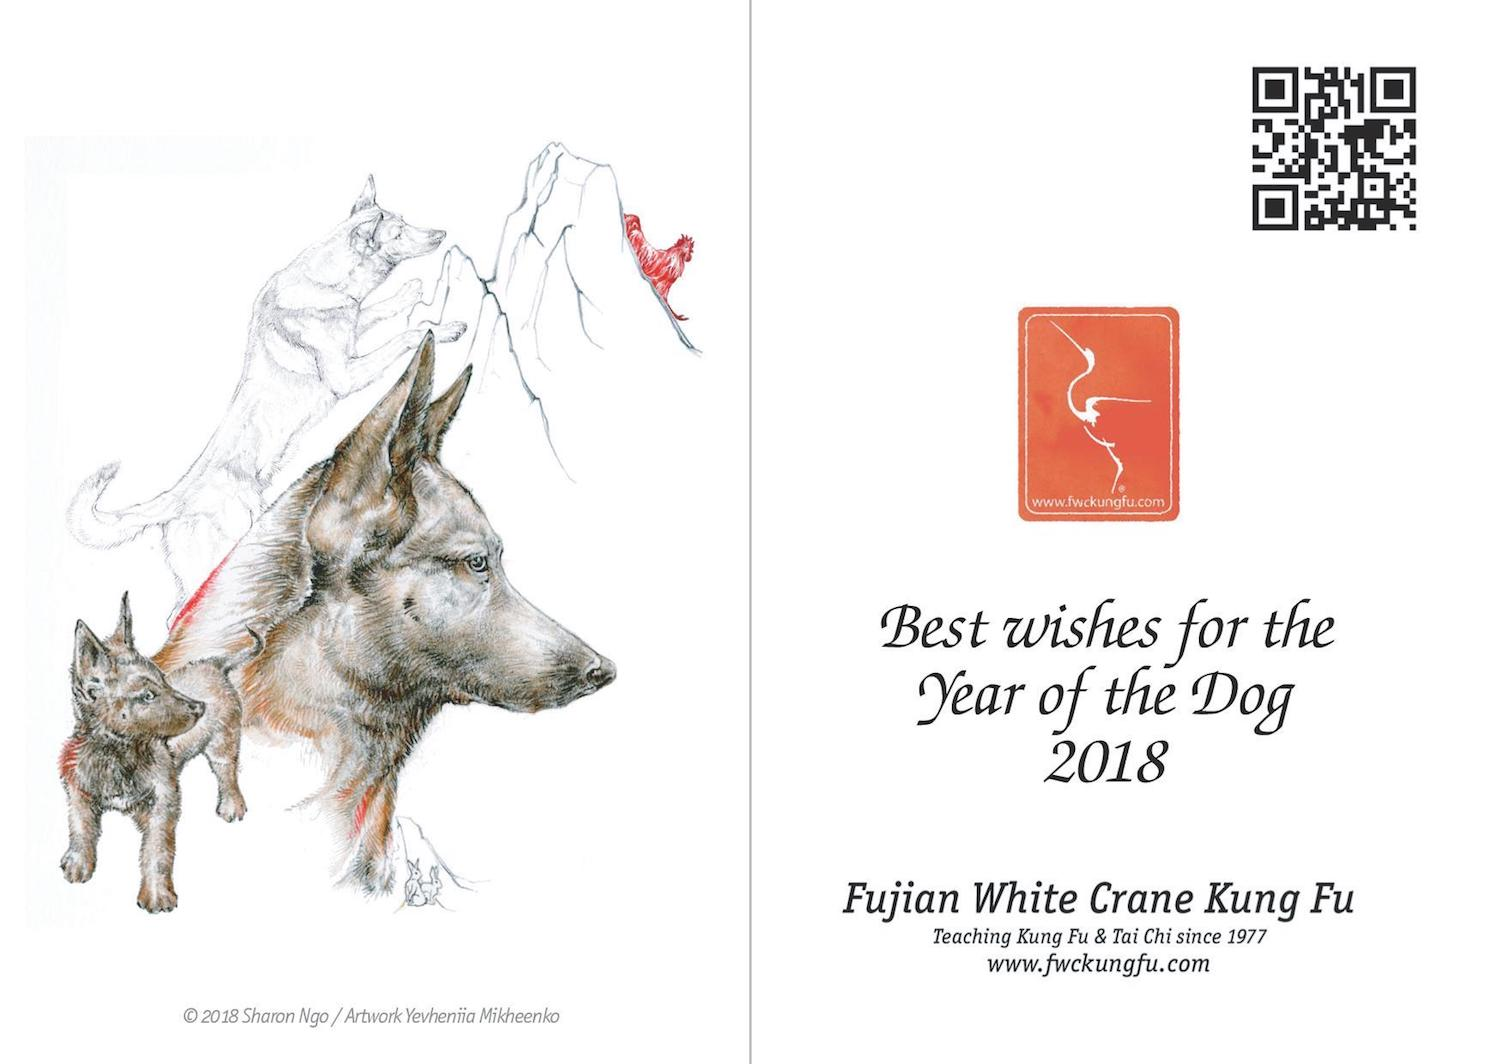 Three drawings of a dog - 2018 Chinese New Year Card of the Fujian White Crane Kung Fu & Tai Chi Martial Arts Club